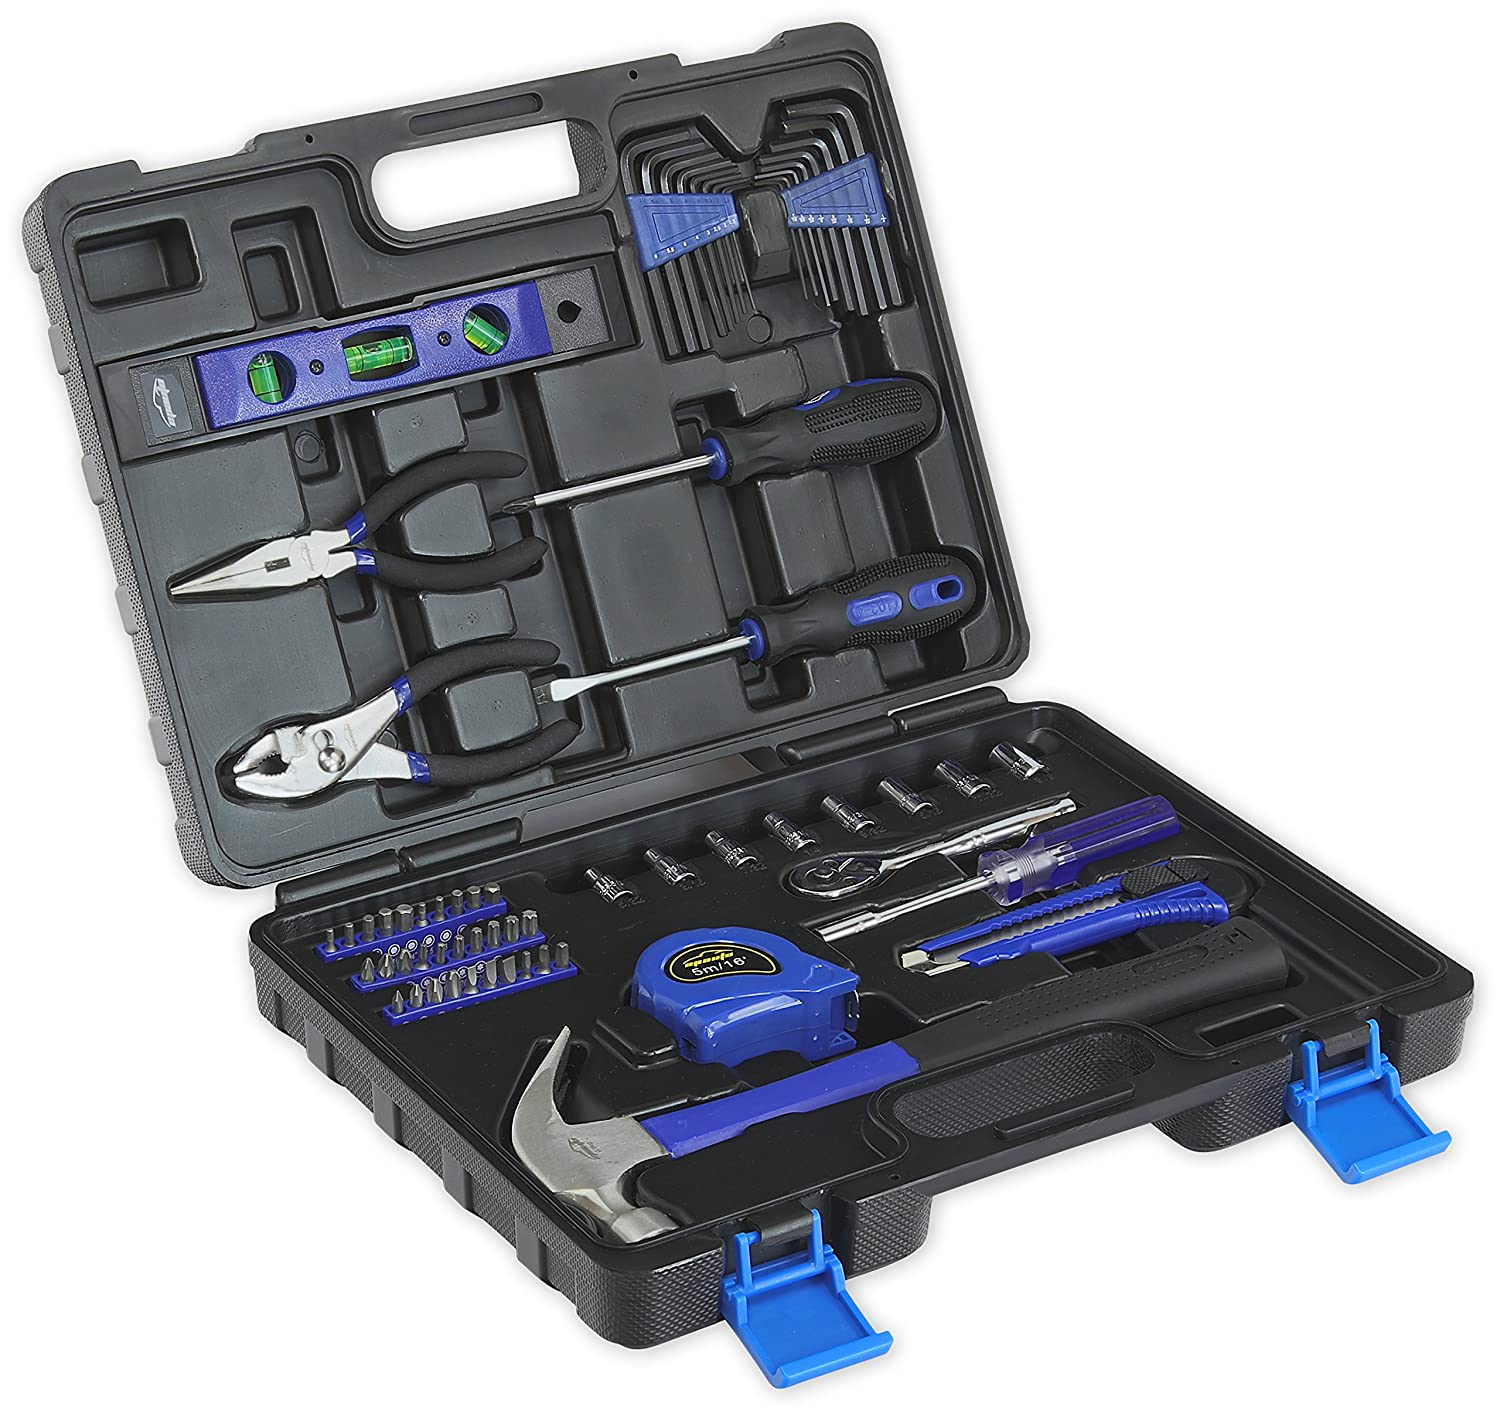 65-Piece Tool Set - General Household Hand Tool Kit with Toolbox Storage Case EPAuto